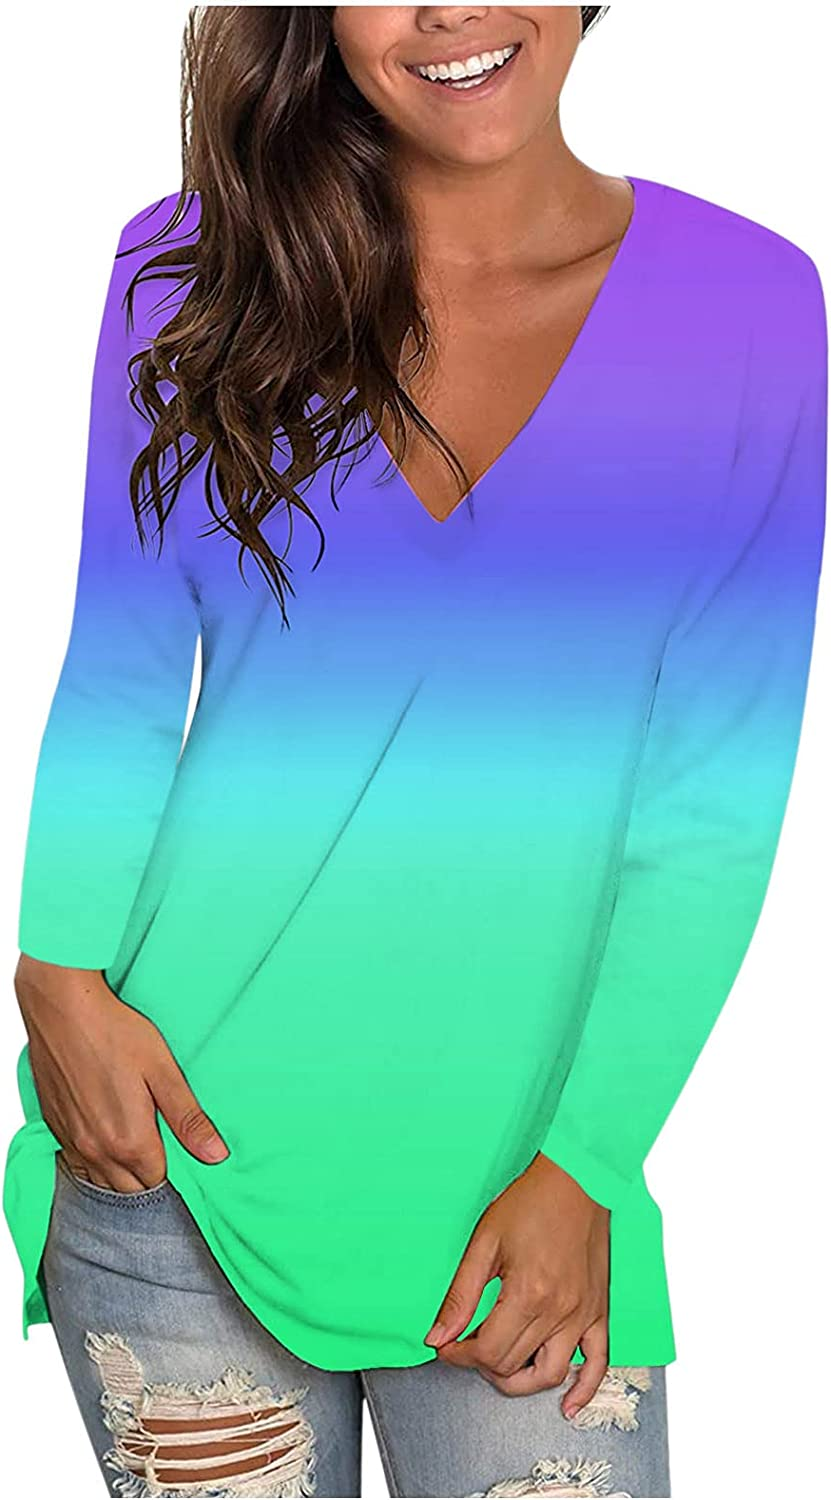 Tops for Women Long Sleeve, Women's V Neck Short Sleeve T Shirts with Pocket Drop Tail Hem Relaxed Fit Tees